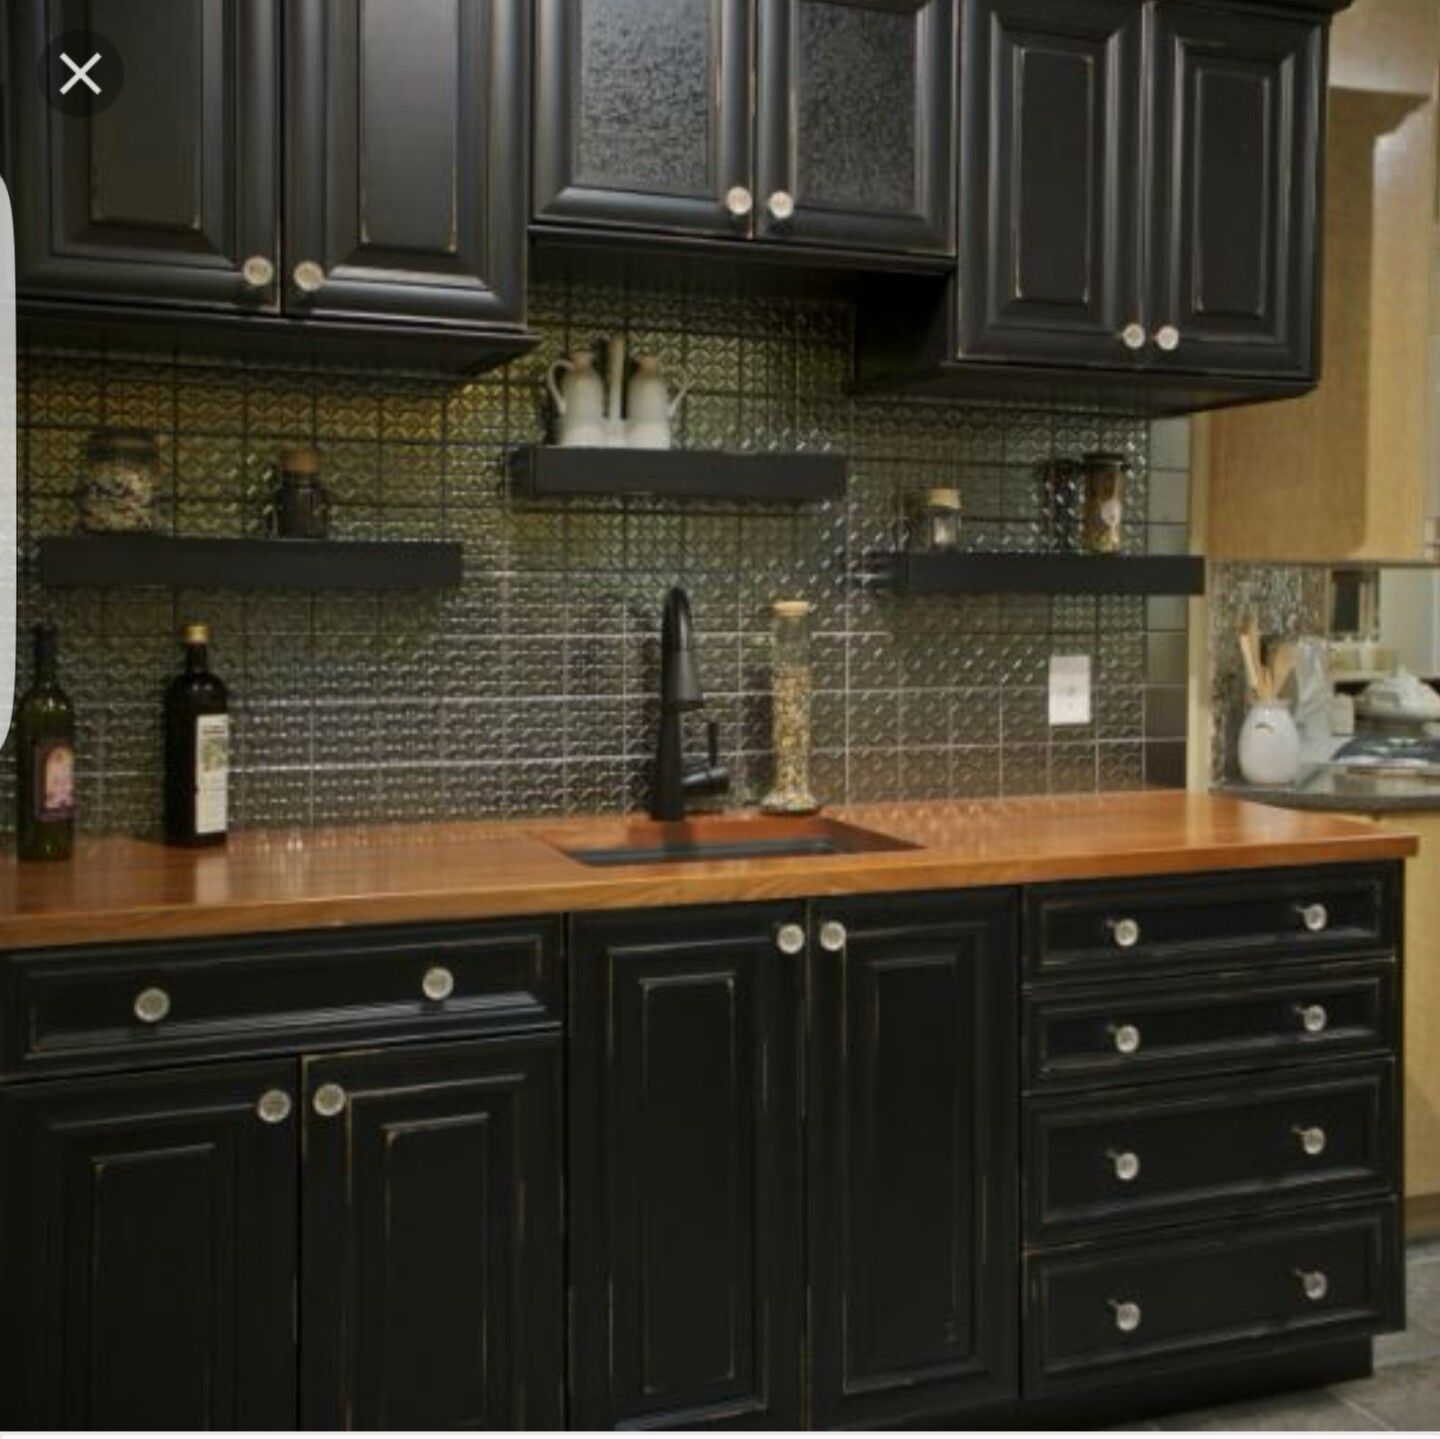 Butcher Block Countertop With Black Cabinets Wood Countertops Kitchen Kitchen Cabinets Black Kitchen Cabinets